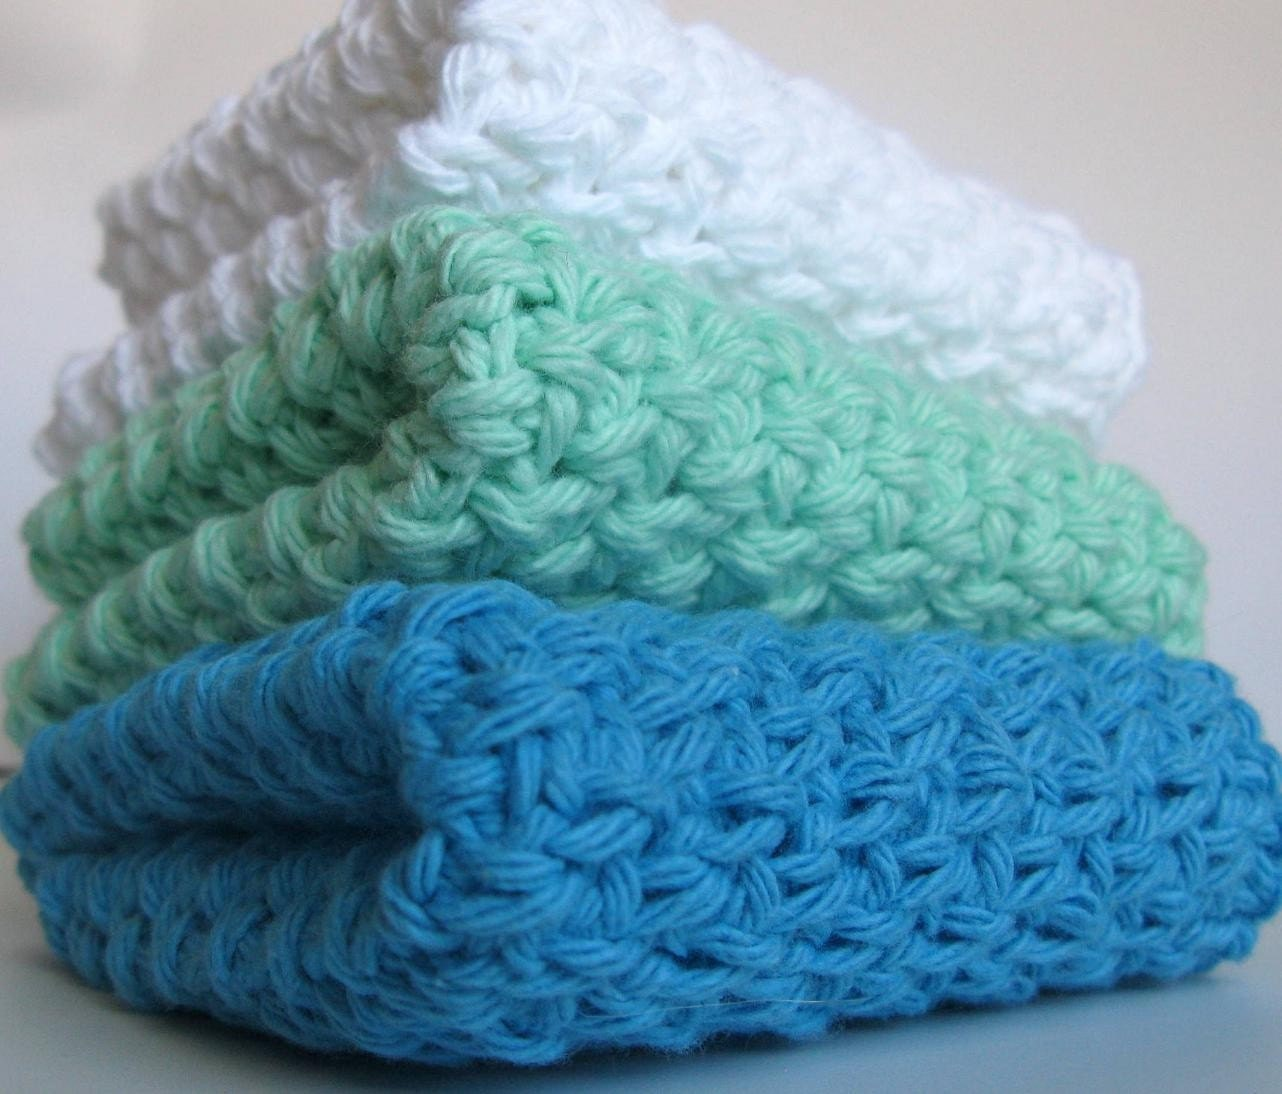 Crochet Maggies Ocean Waves Dish Cloths